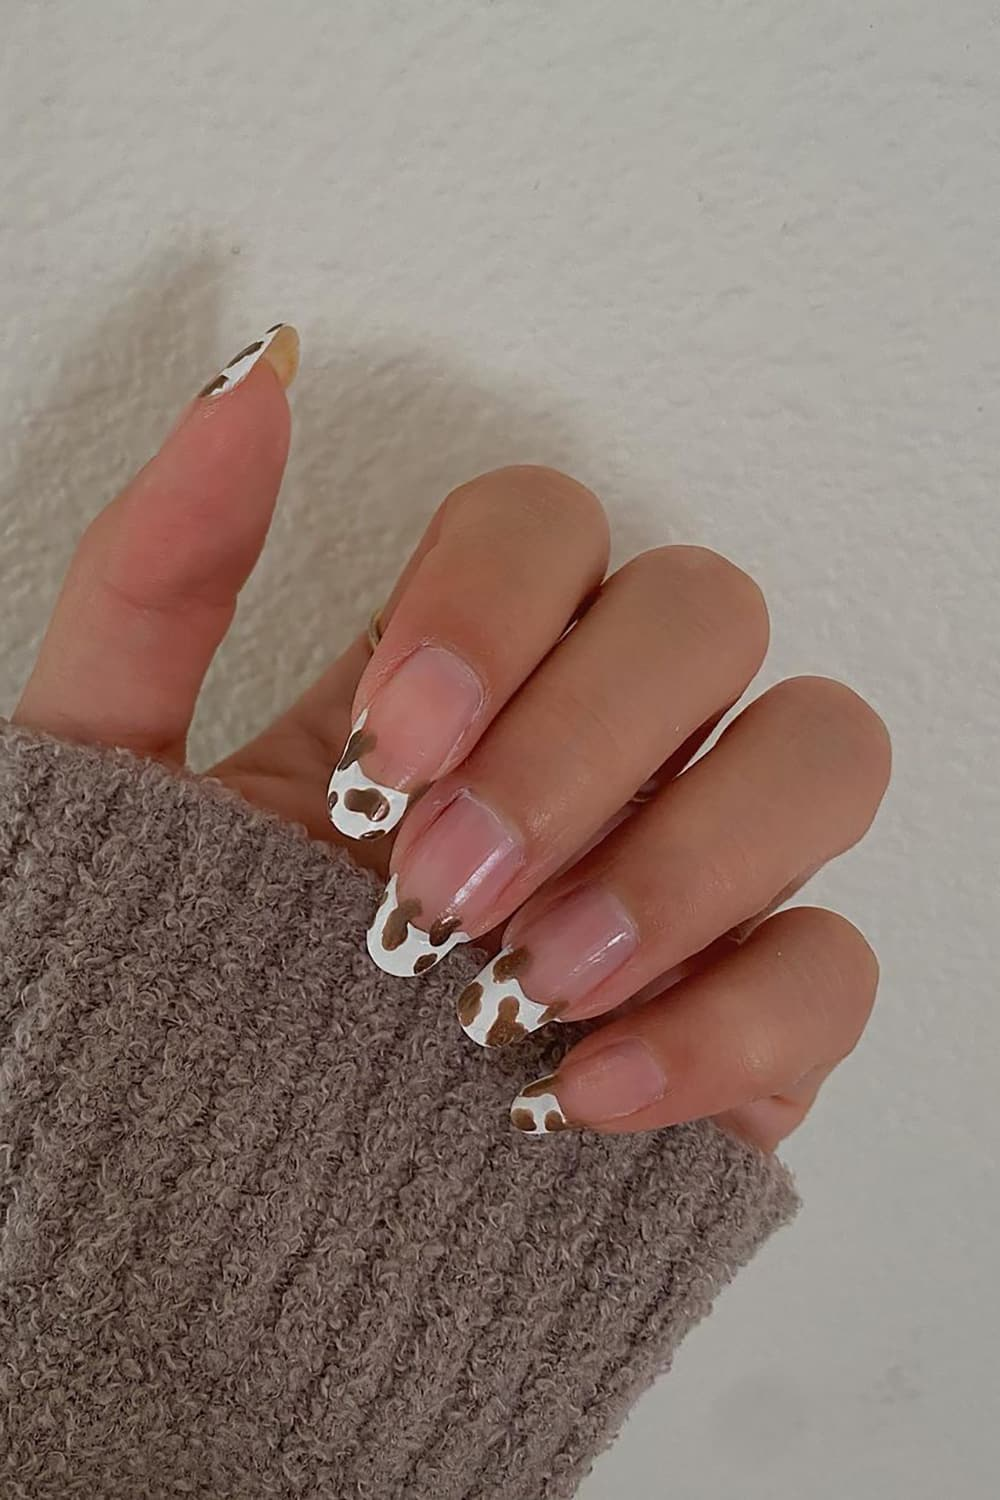 Cow brown nails